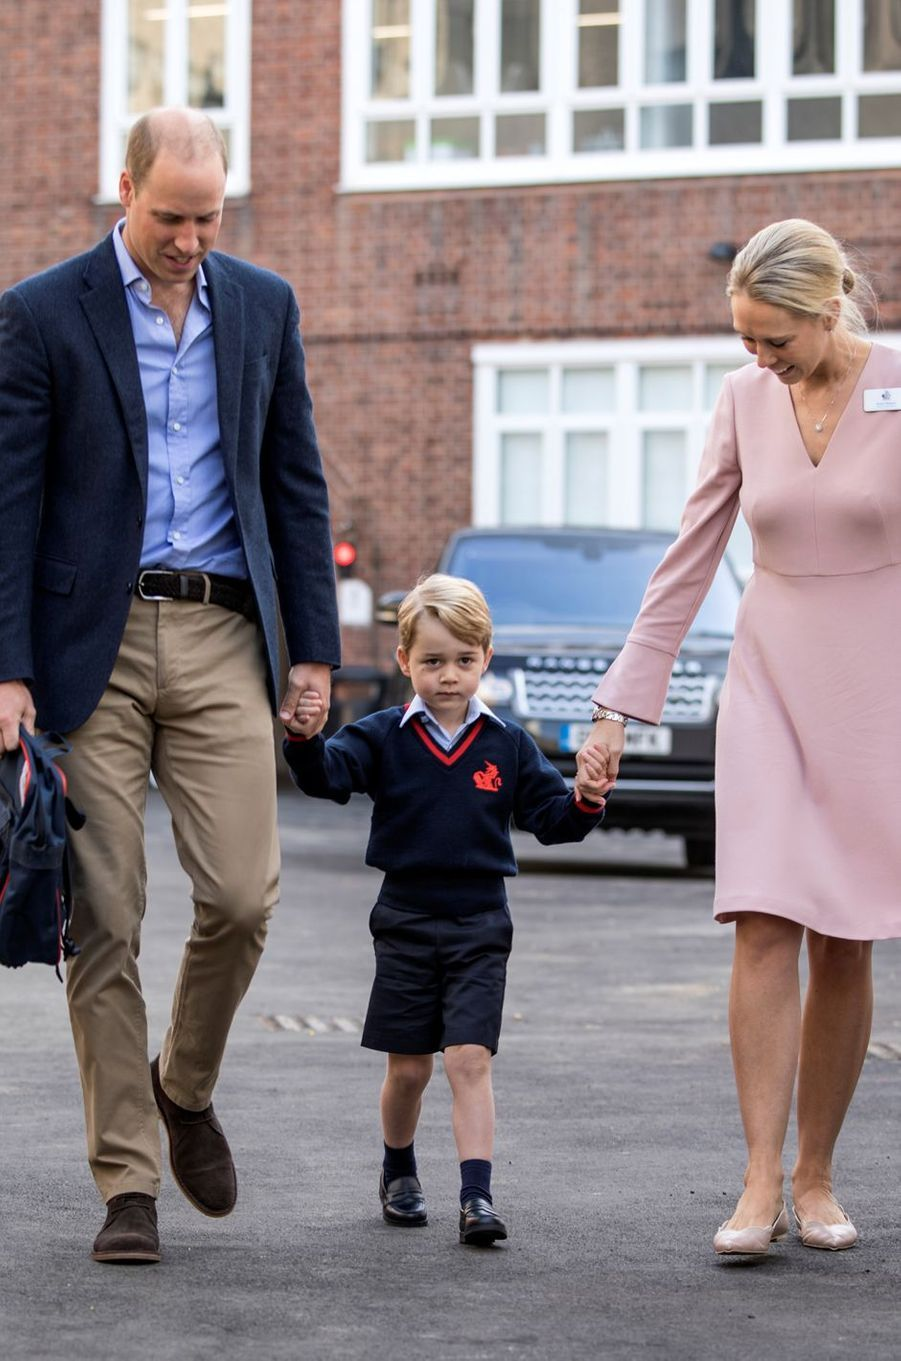 Le prince George de Cambridge à Londres avec le prince William et la directrice de son école, le 7 septembre 2017